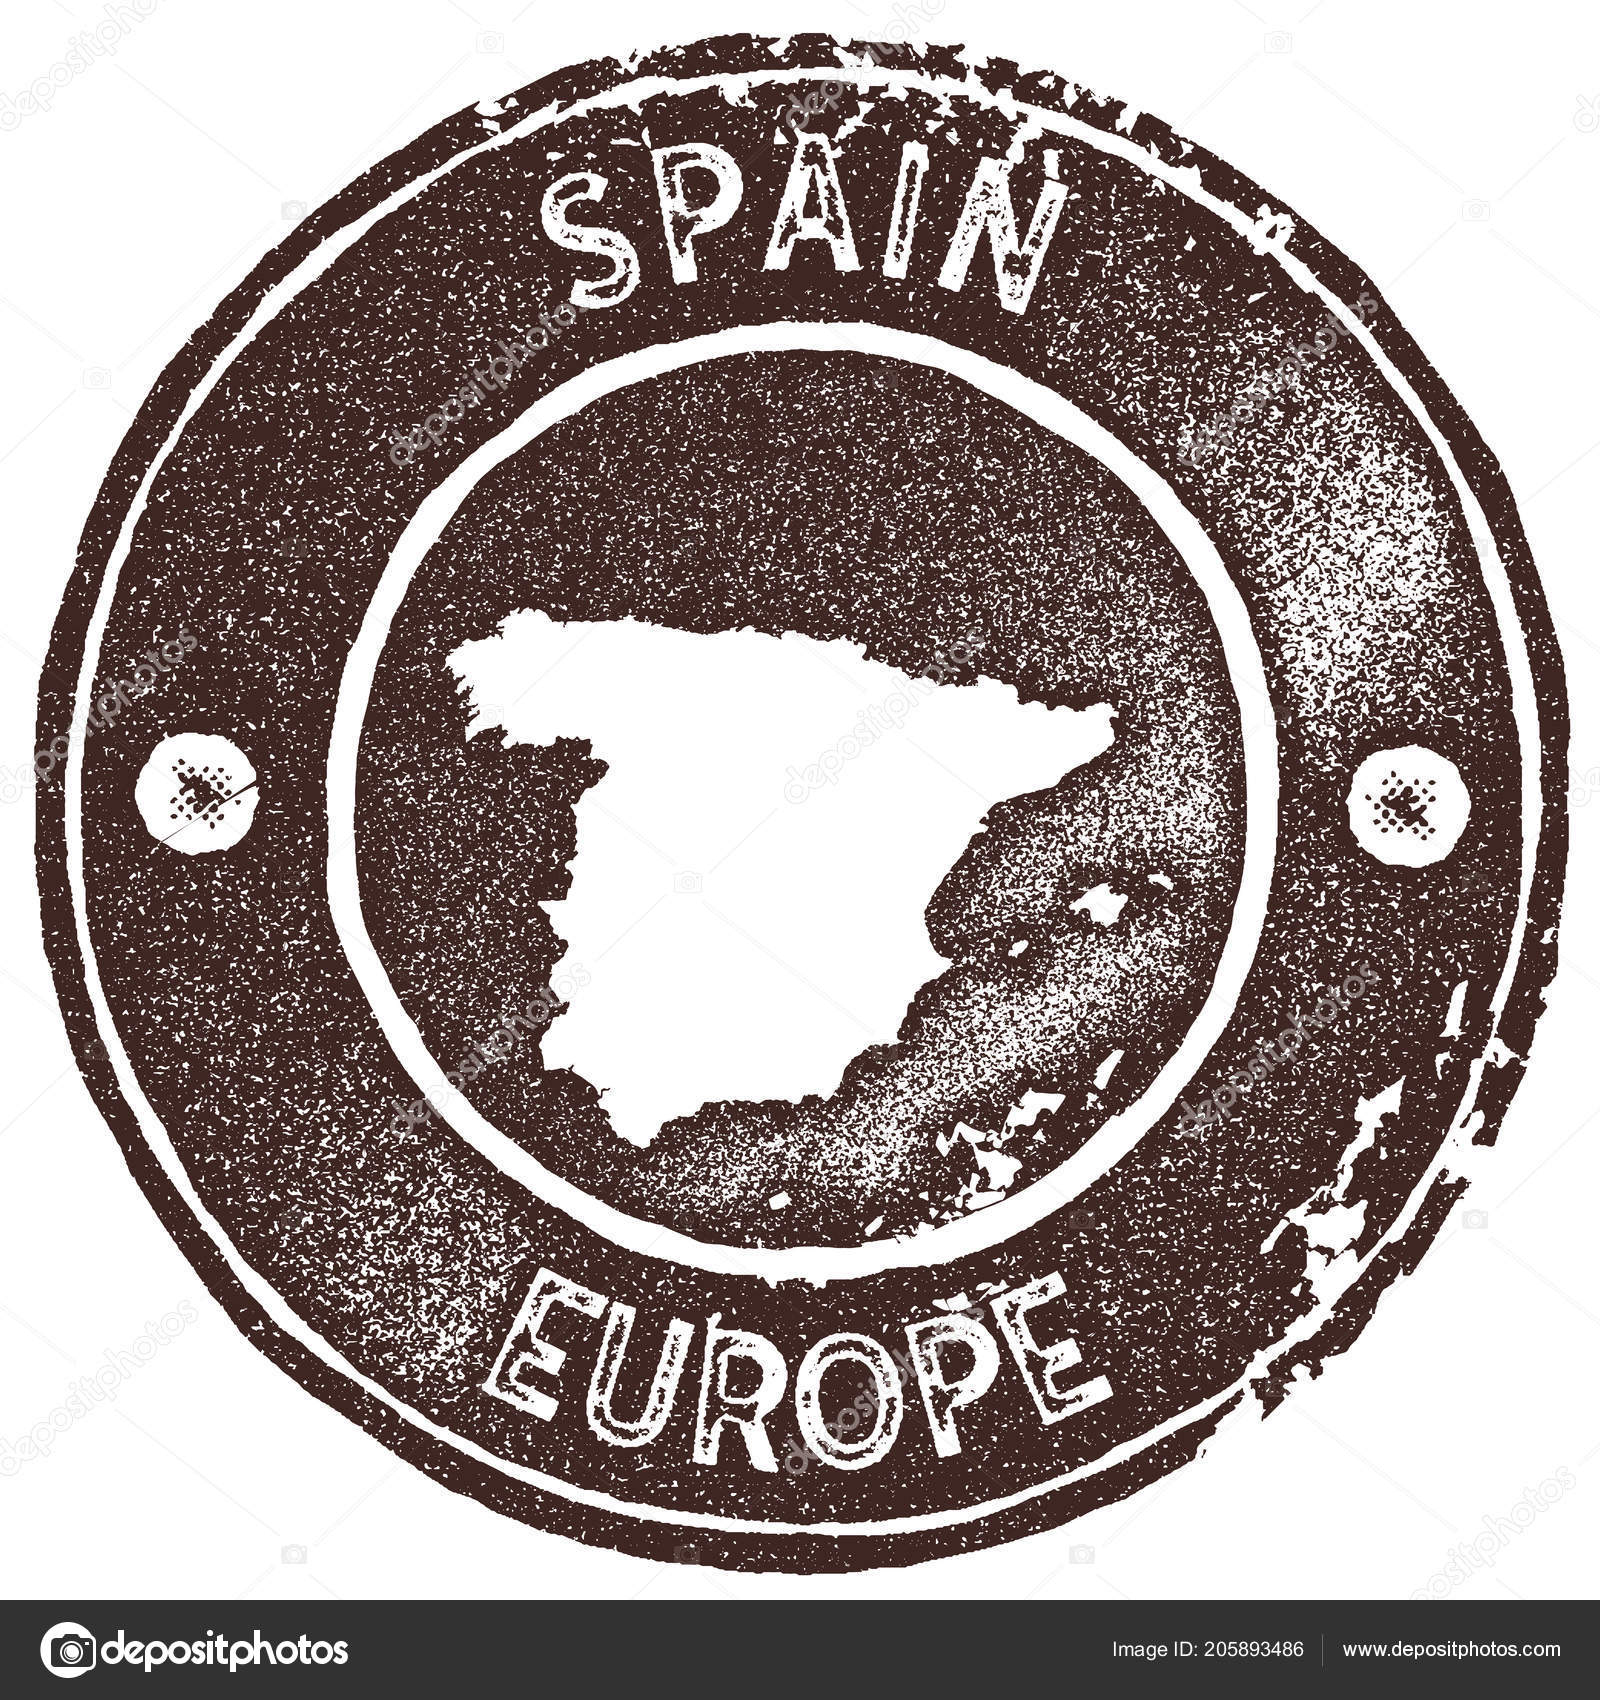 Map Of Spain To Label.Spain Map Vintage Stamp Retro Style Handmade Label Badge Or Element